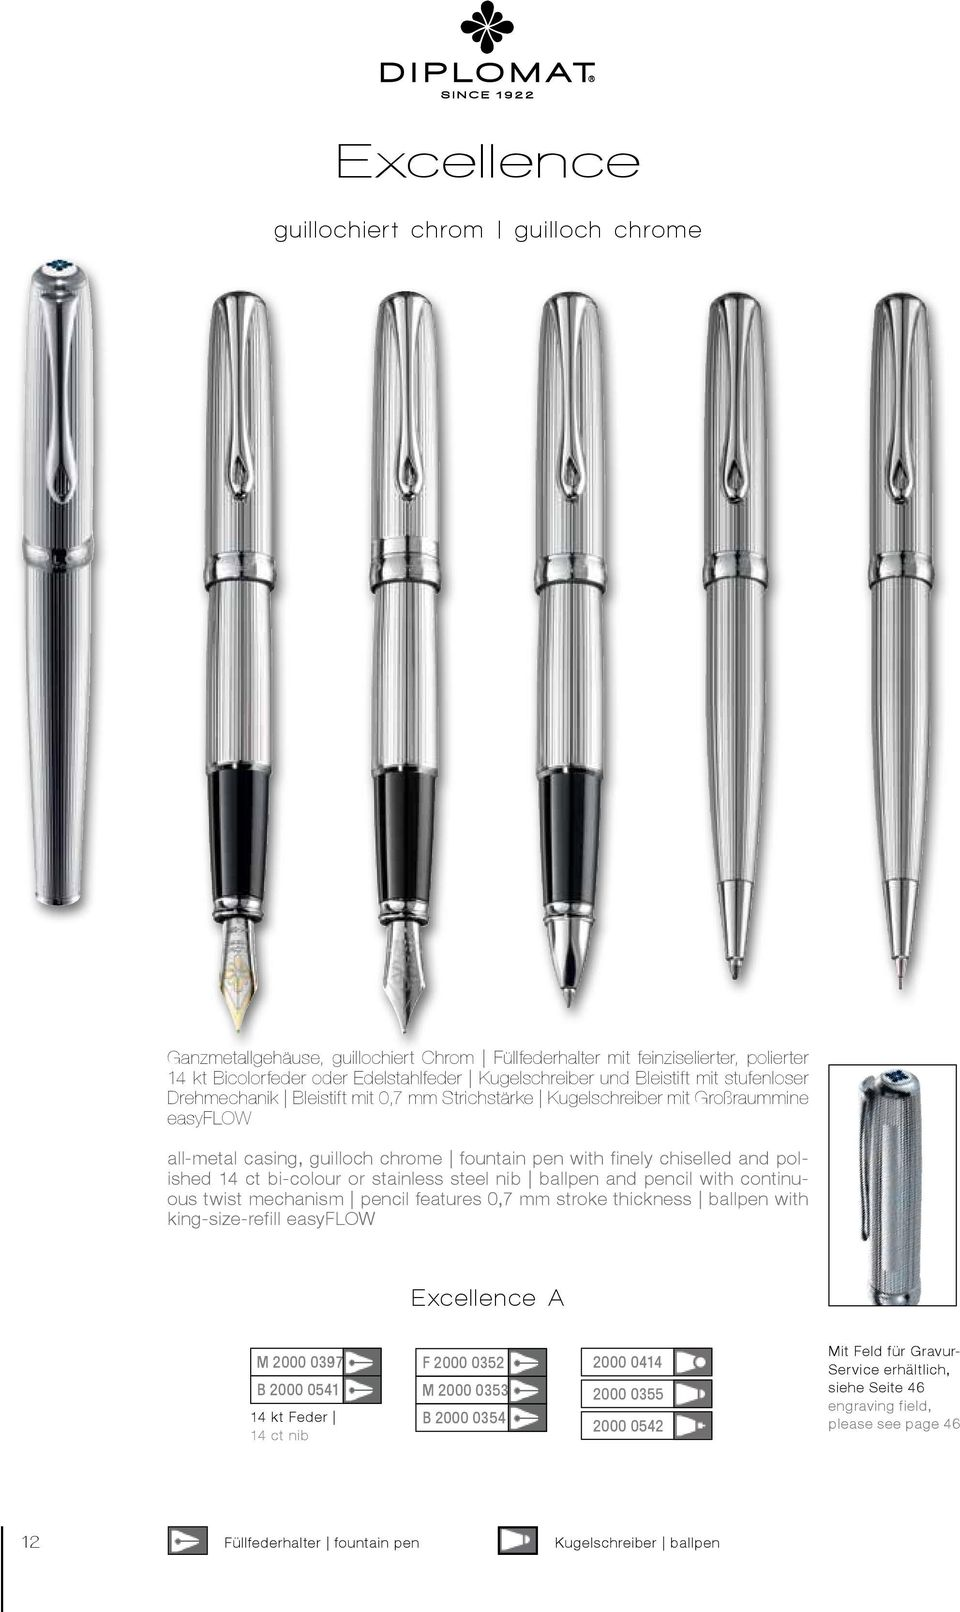 bi-colour or stainless steel nib ballpen and pencil with continuous twist mechanism pencil features 0,7 mm stroke thickness ballpen with king-size-refill easyflow Excellence A M 2000 0397 B 2000 0541